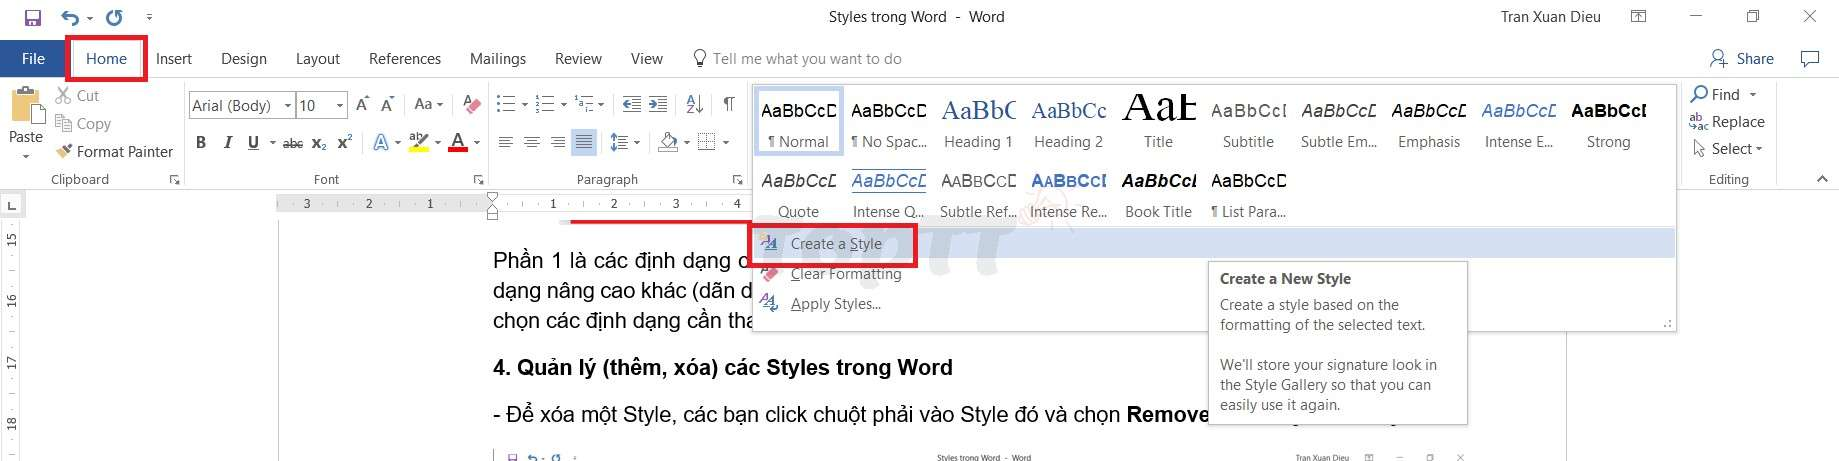 cach su dung style trong word 8